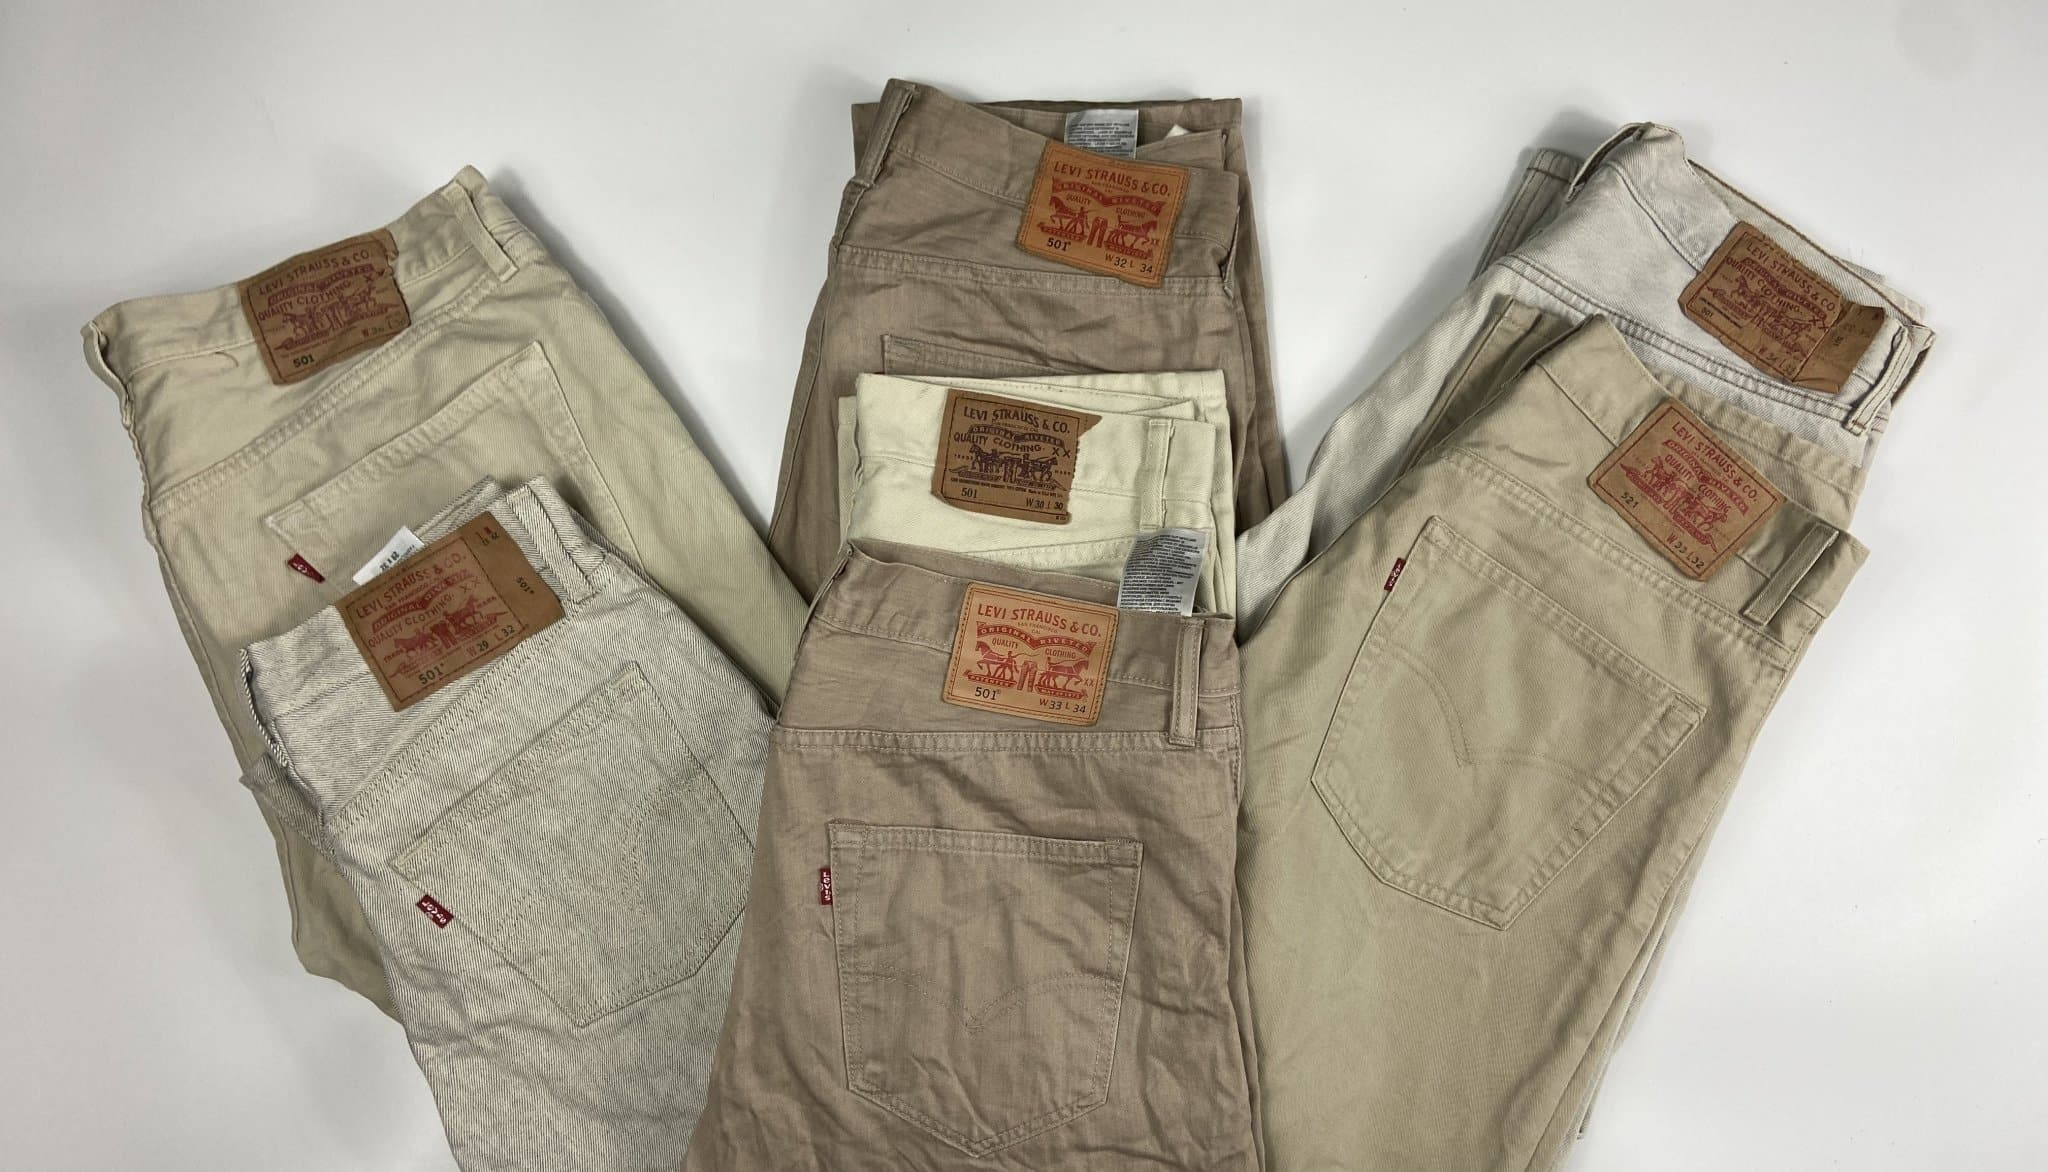 Vintage Levi's Classic Beige/Cream 501 Jeans W30 L32 (BE1) - Discounted Deals UK